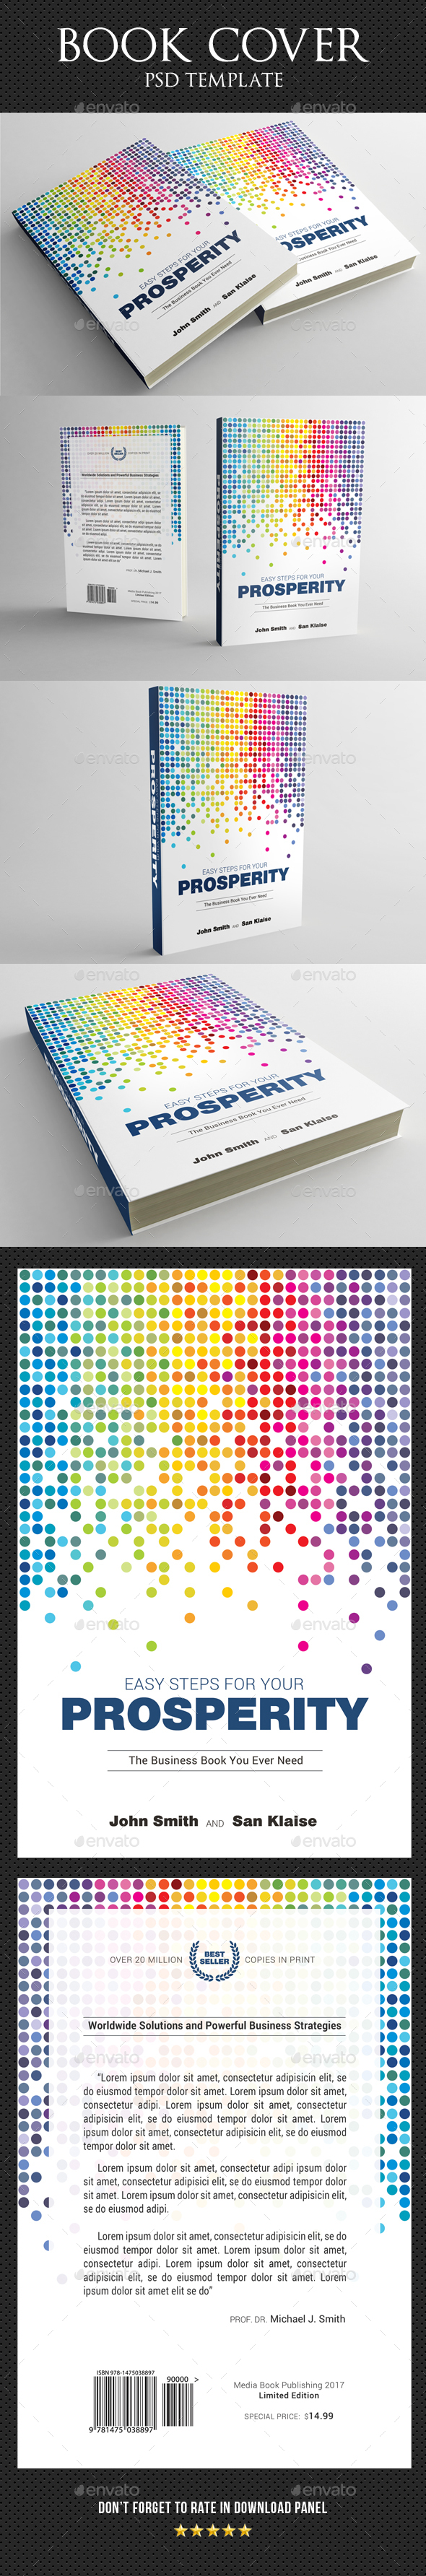 Book Cover Template 46 - Miscellaneous Print Templates